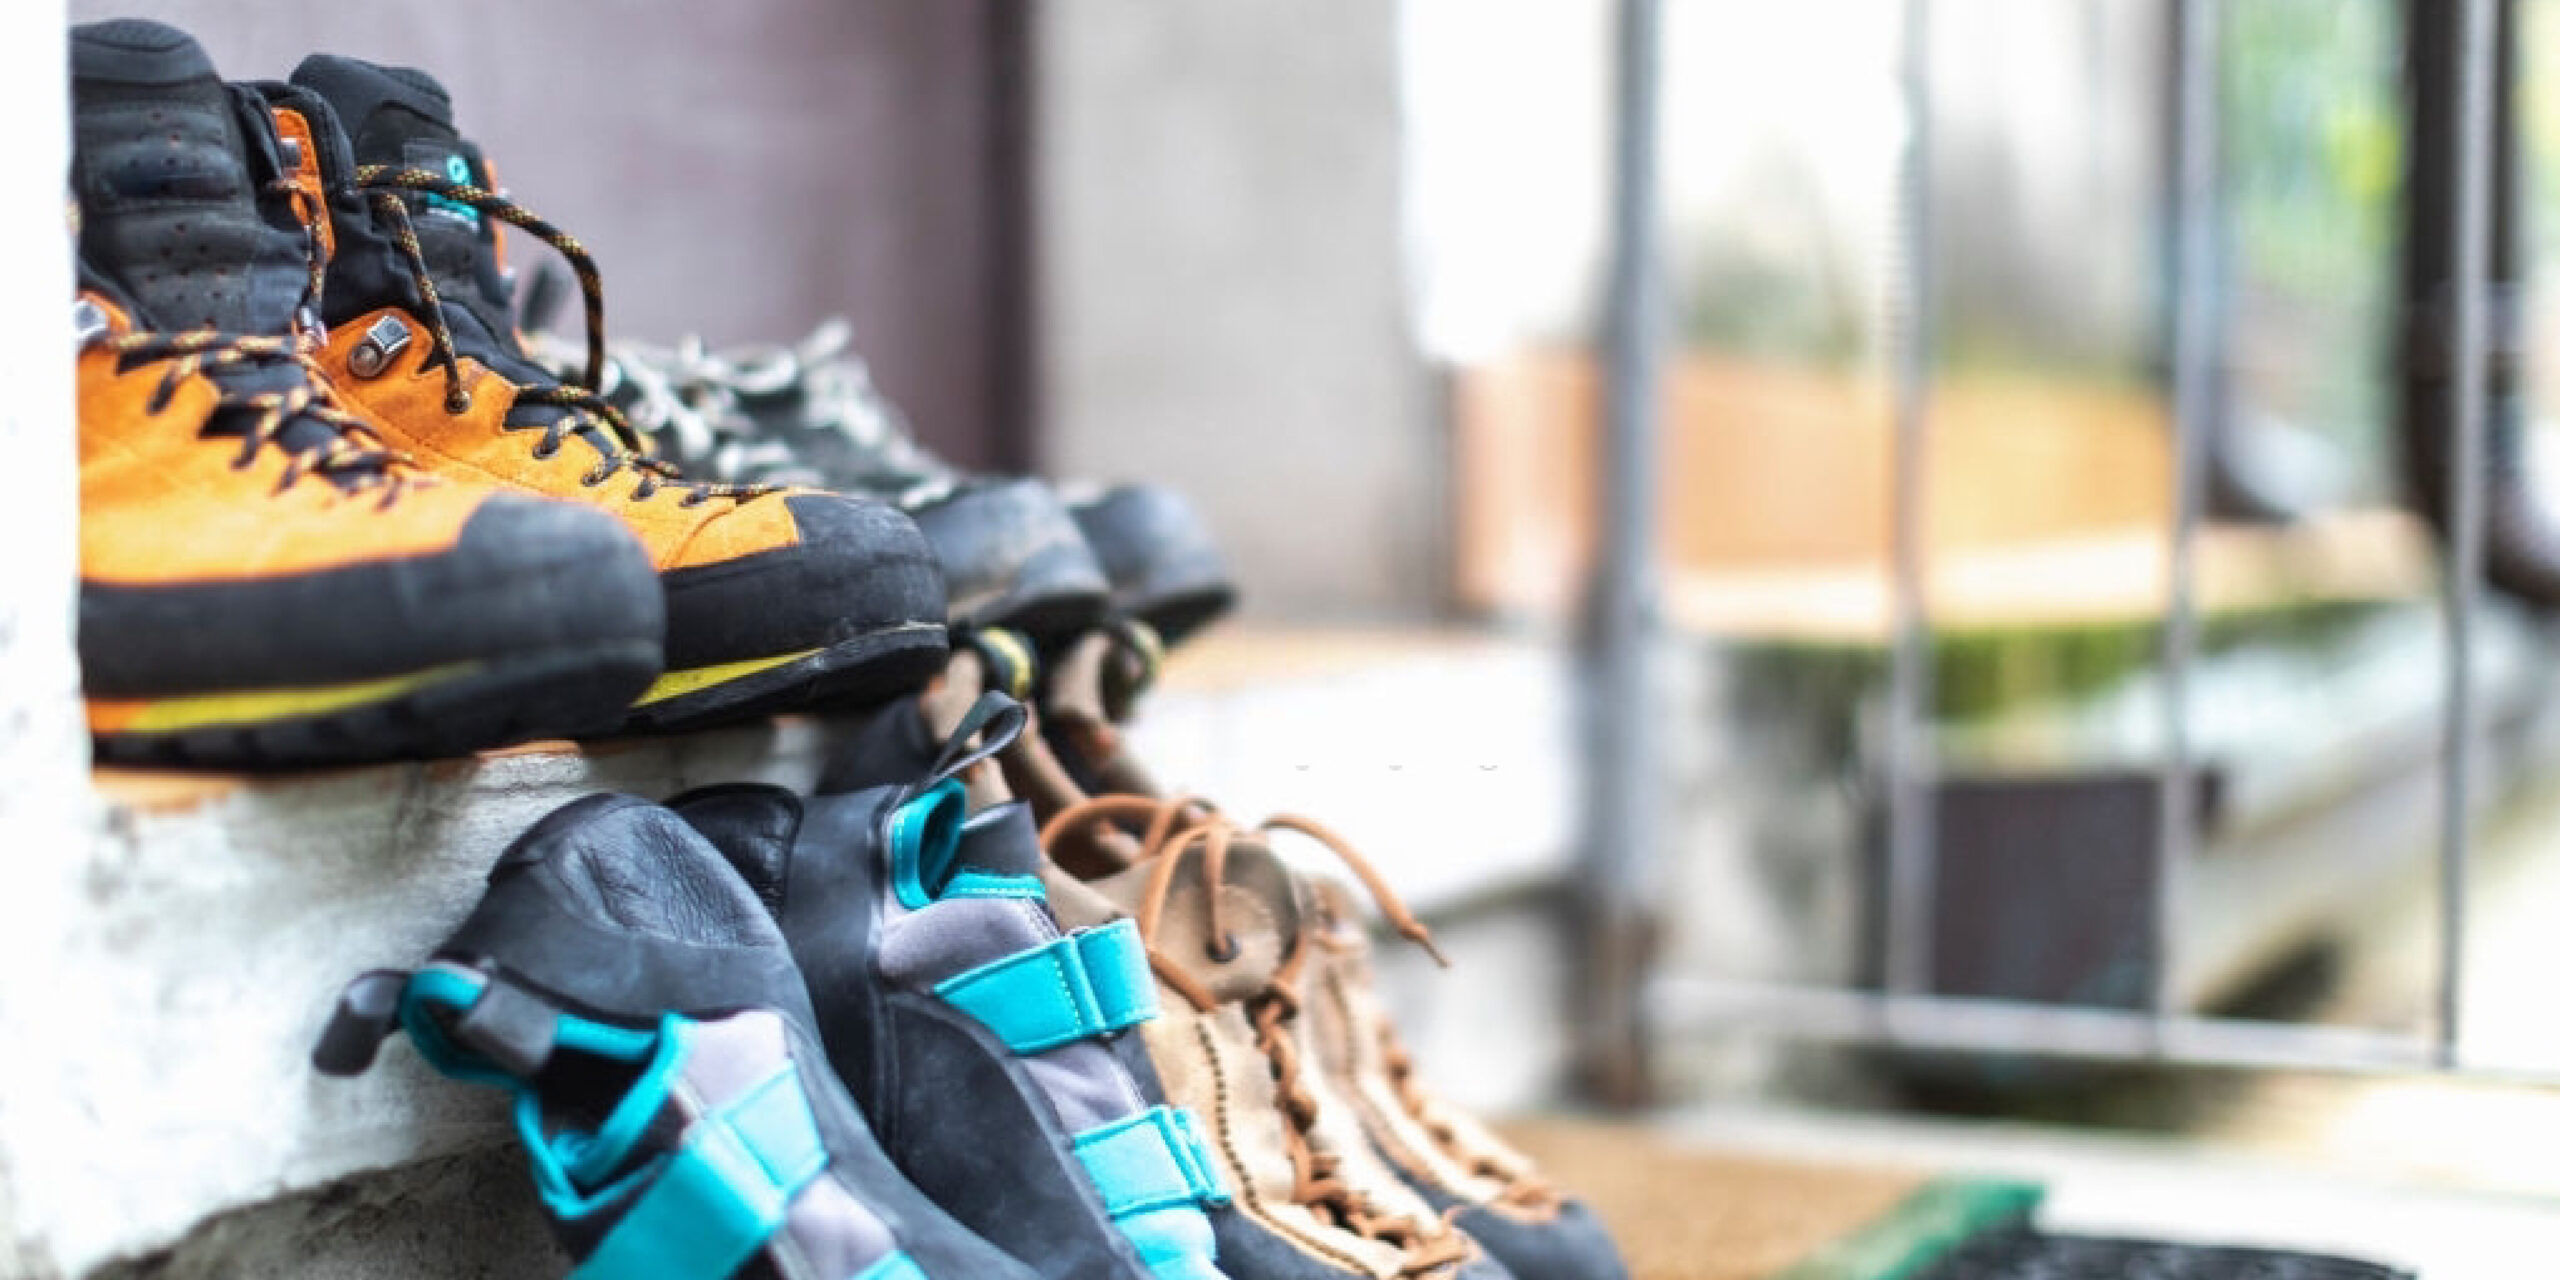 How to Clean Hiking Shoes